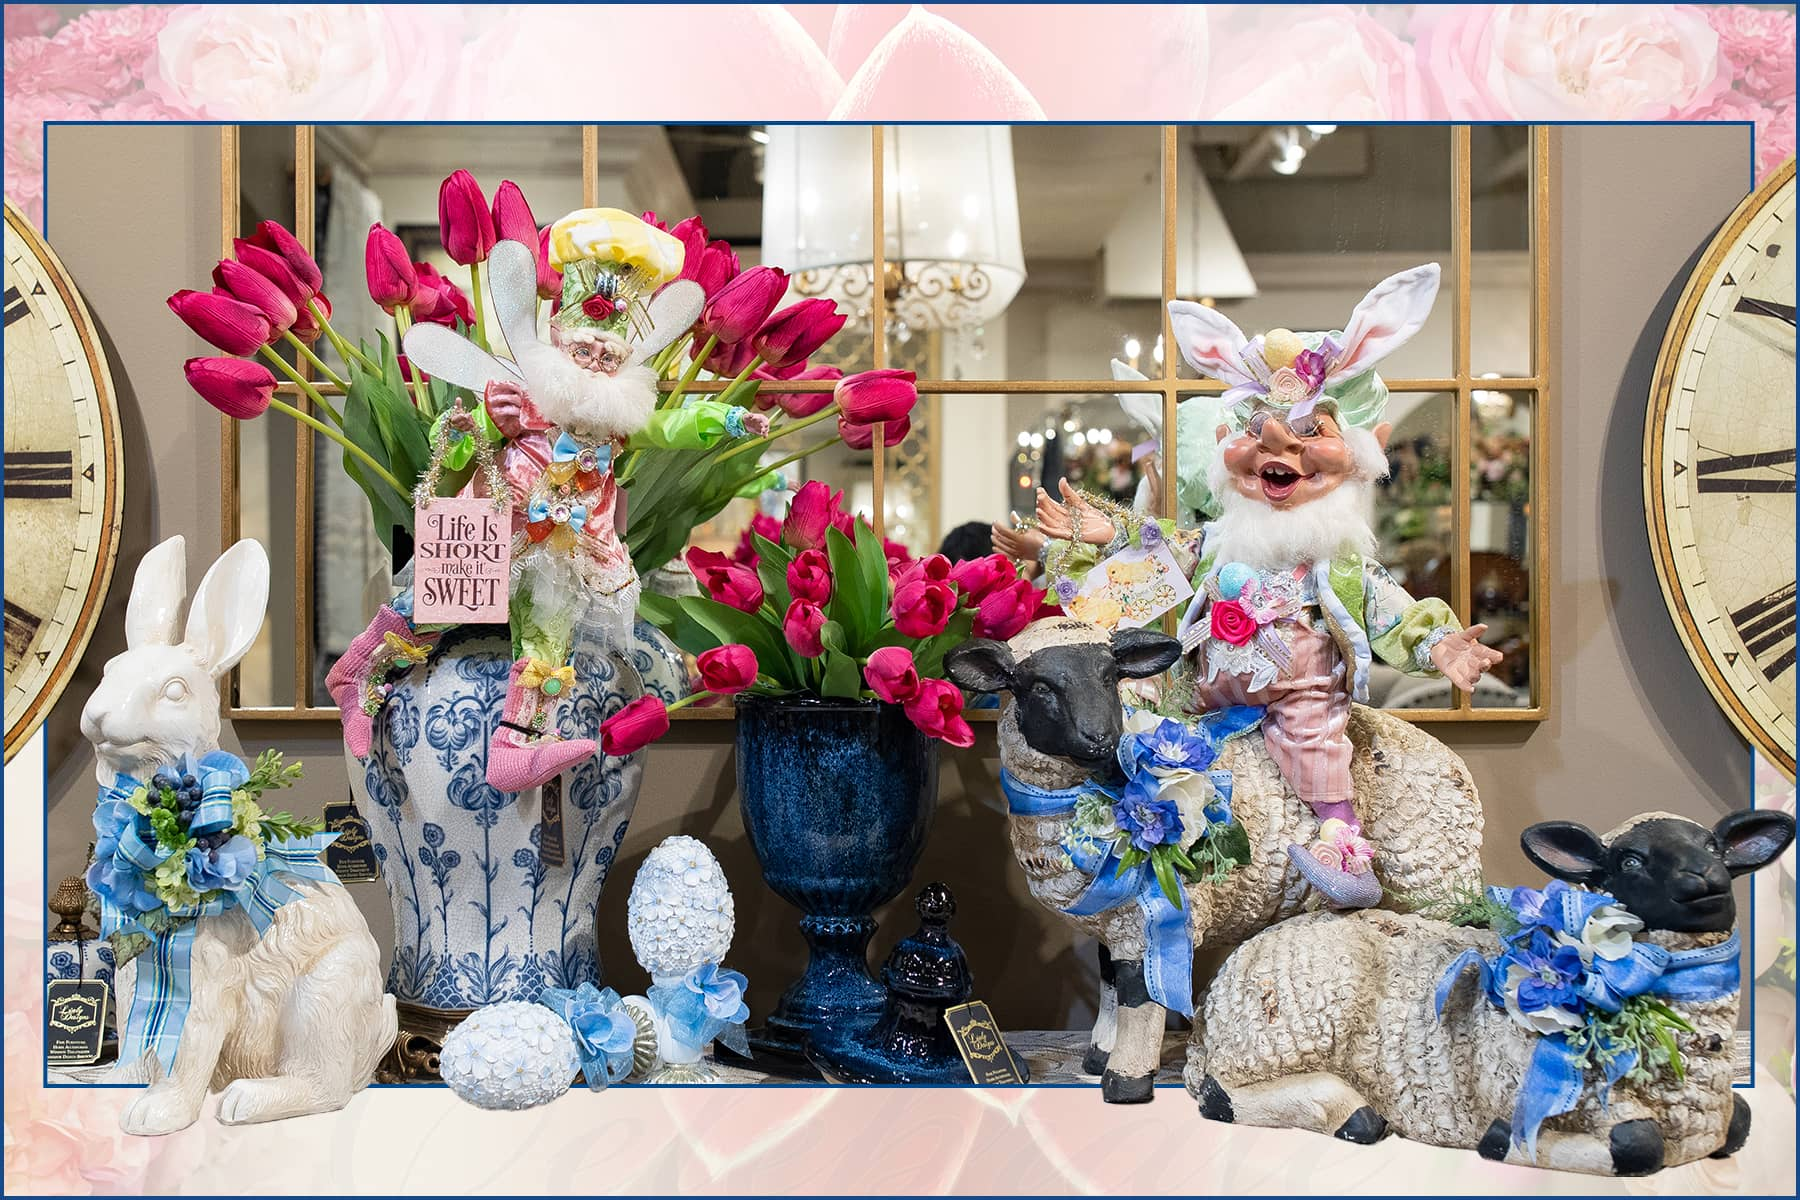 Mark Roberts Easter Fairies and Elves with Spring Bunnies and Flower Stem Decor for Linly Designs 2020 Spring Open House